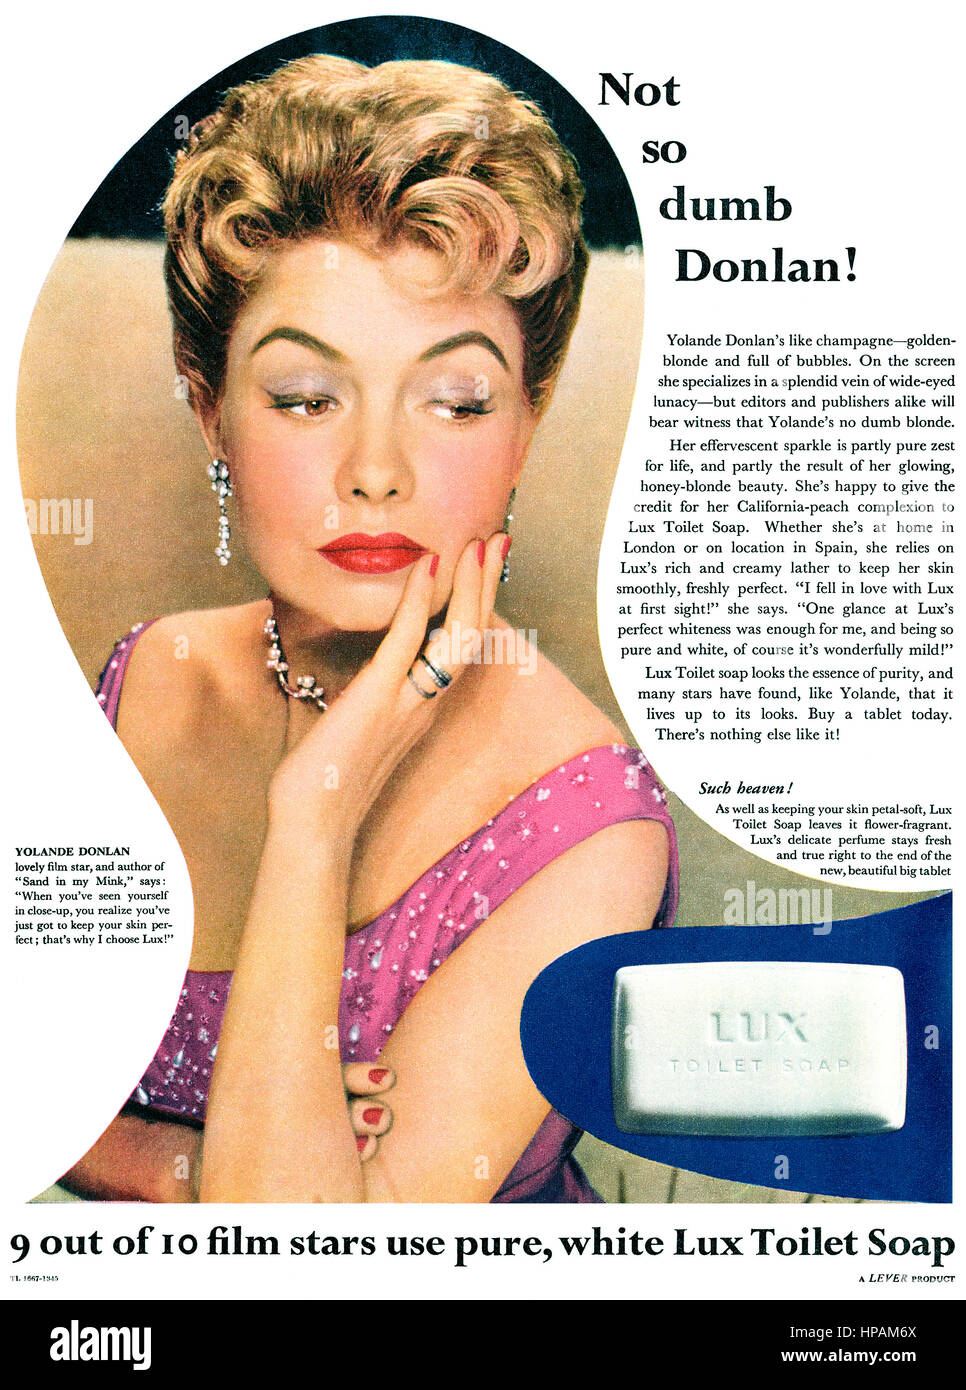 1956 British advertisement for Lux Soap, featuring actress Yolande Donlan. - Stock Image